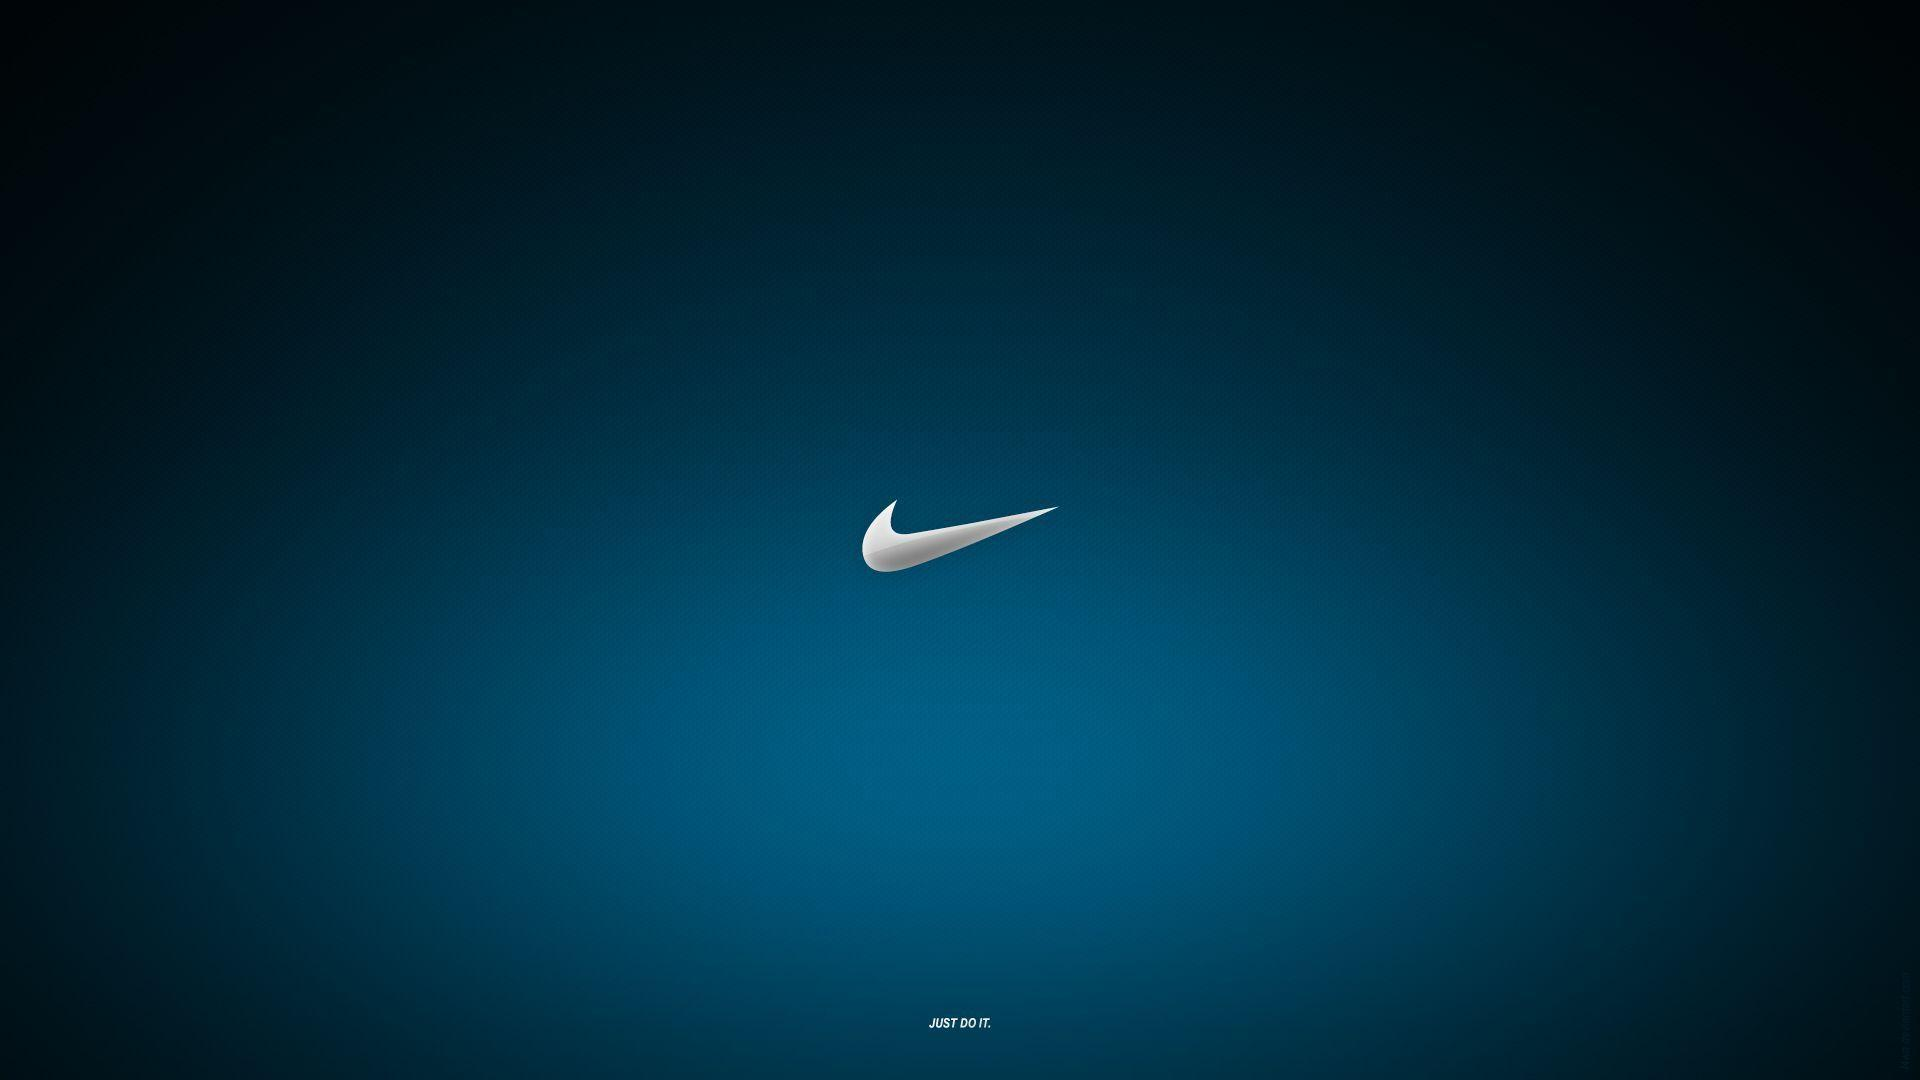 Wallpapers For > Nike Wallpaper Just Do It Soccer